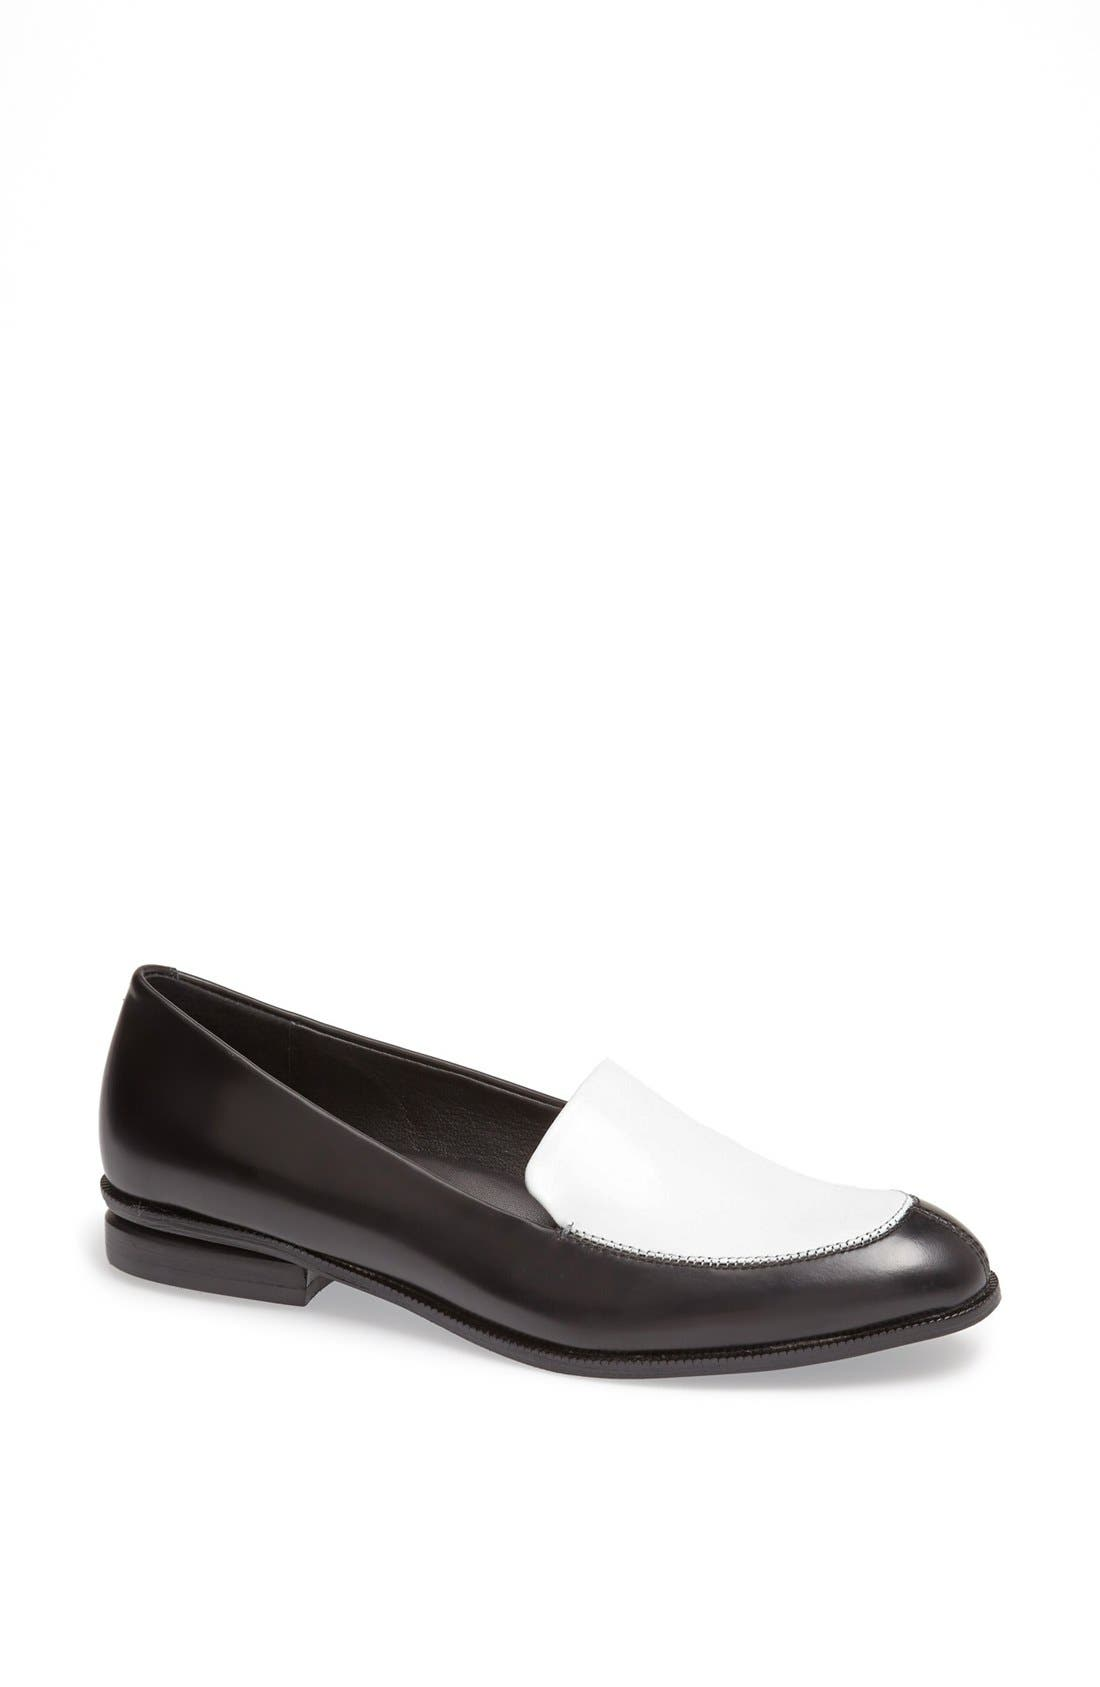 Main Image - Kenneth Cole New York 'Hudson' Leather Flat